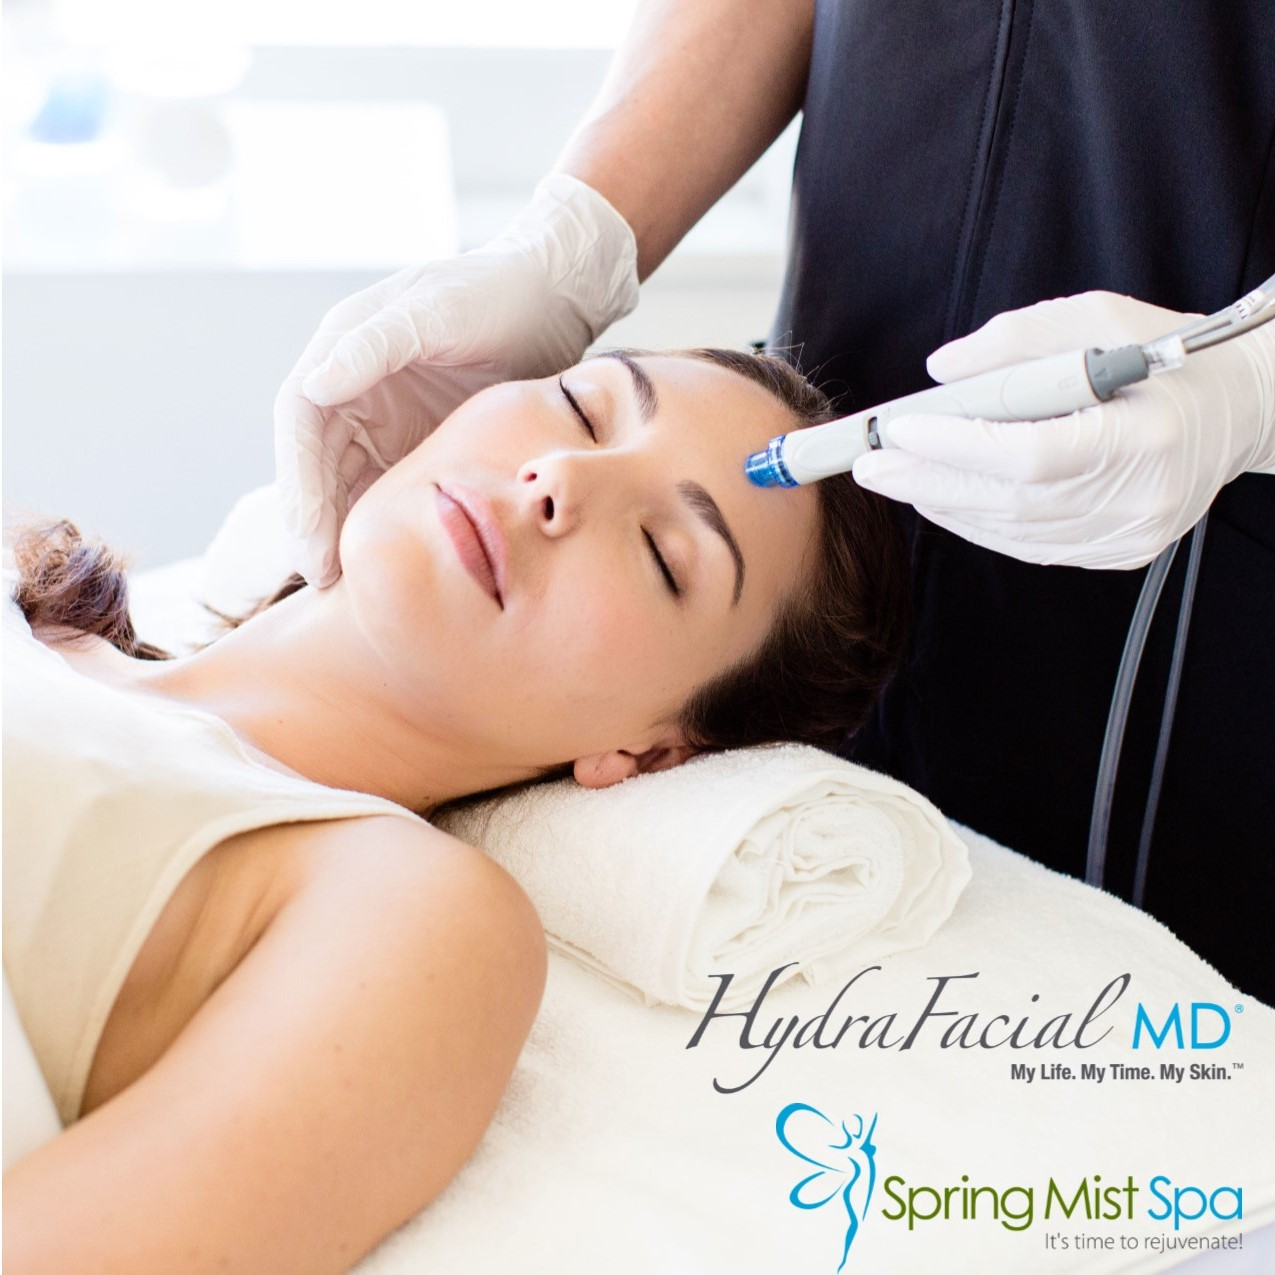 Spring Mist Milton Spa Specials, Offers, Deals and Discounts for Summer 2018 - Hydrafacial Special at Spring Mist Spa